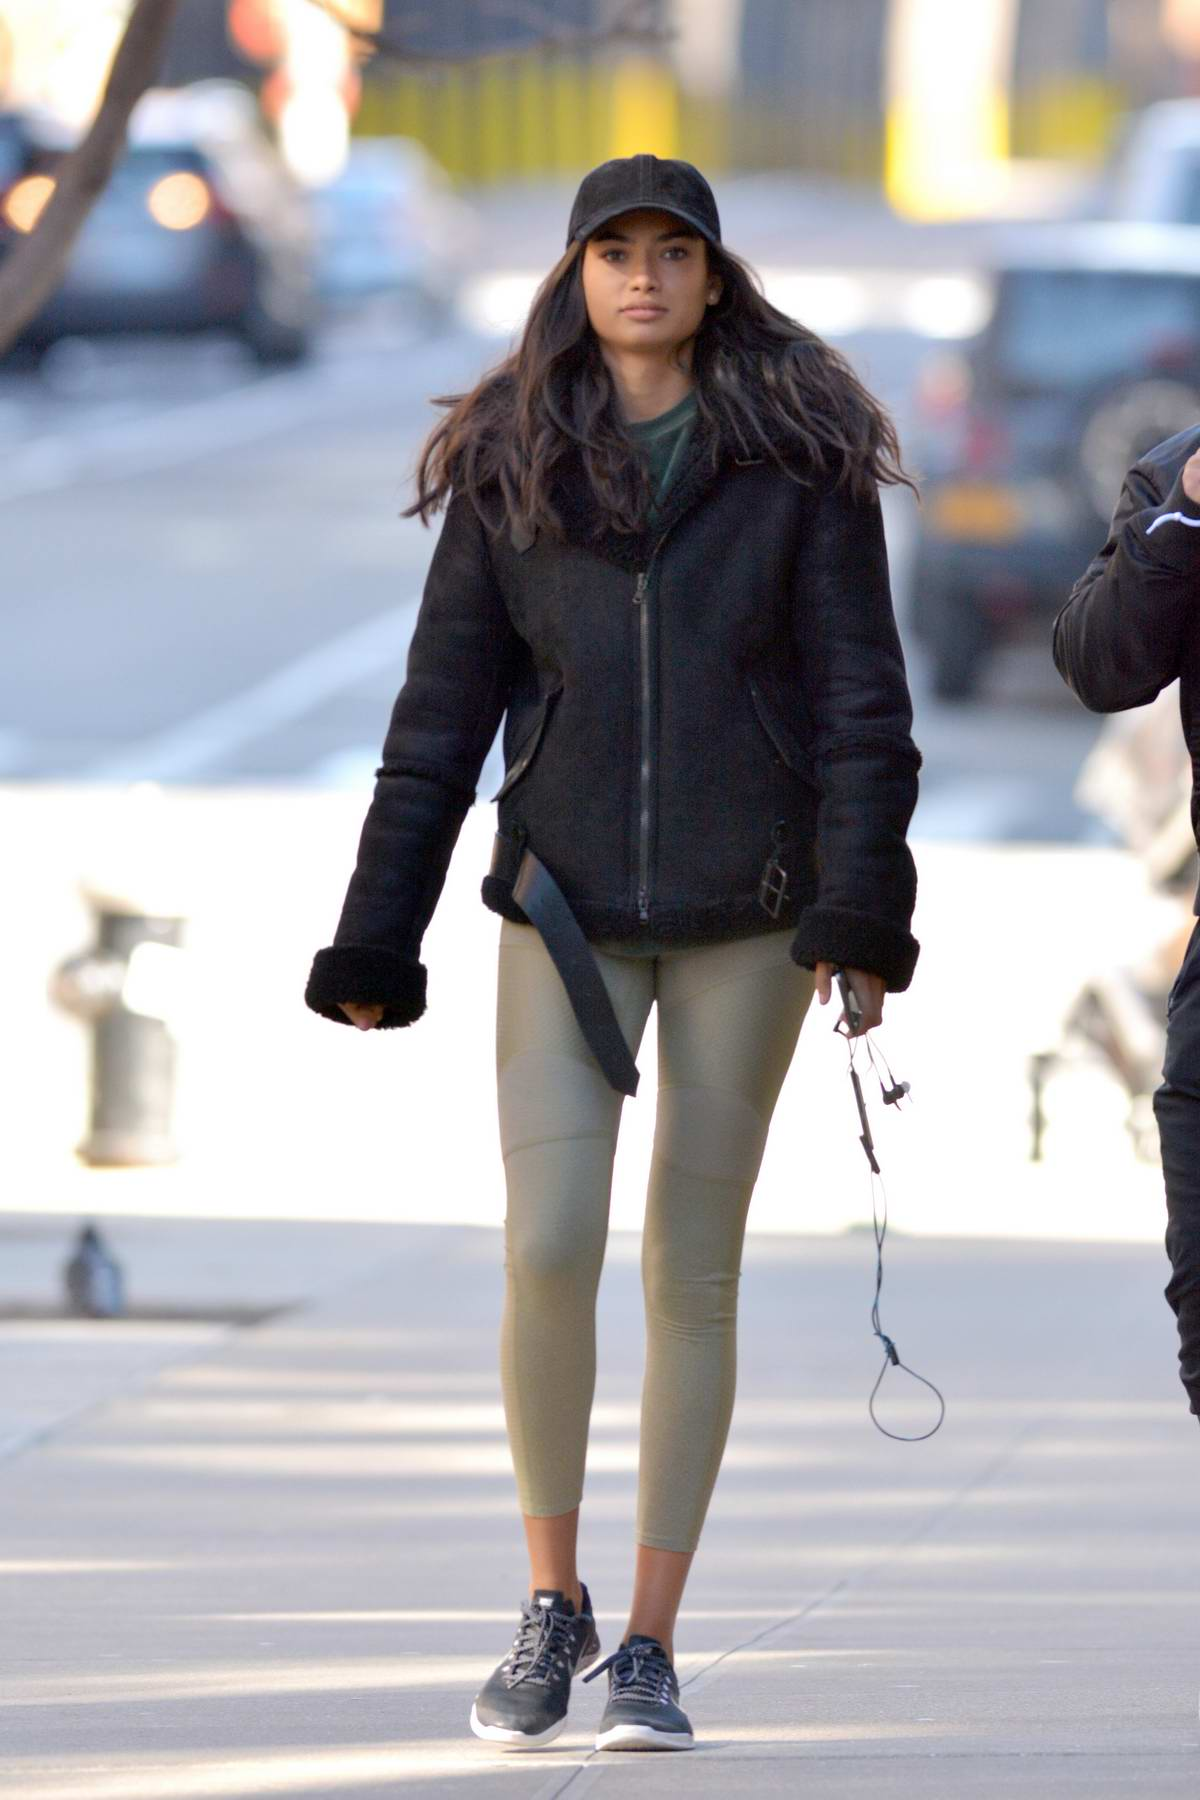 Kelly Gale spotted in a black jacket with gold leggings as she leaves a gym with her personal trainer in New York City